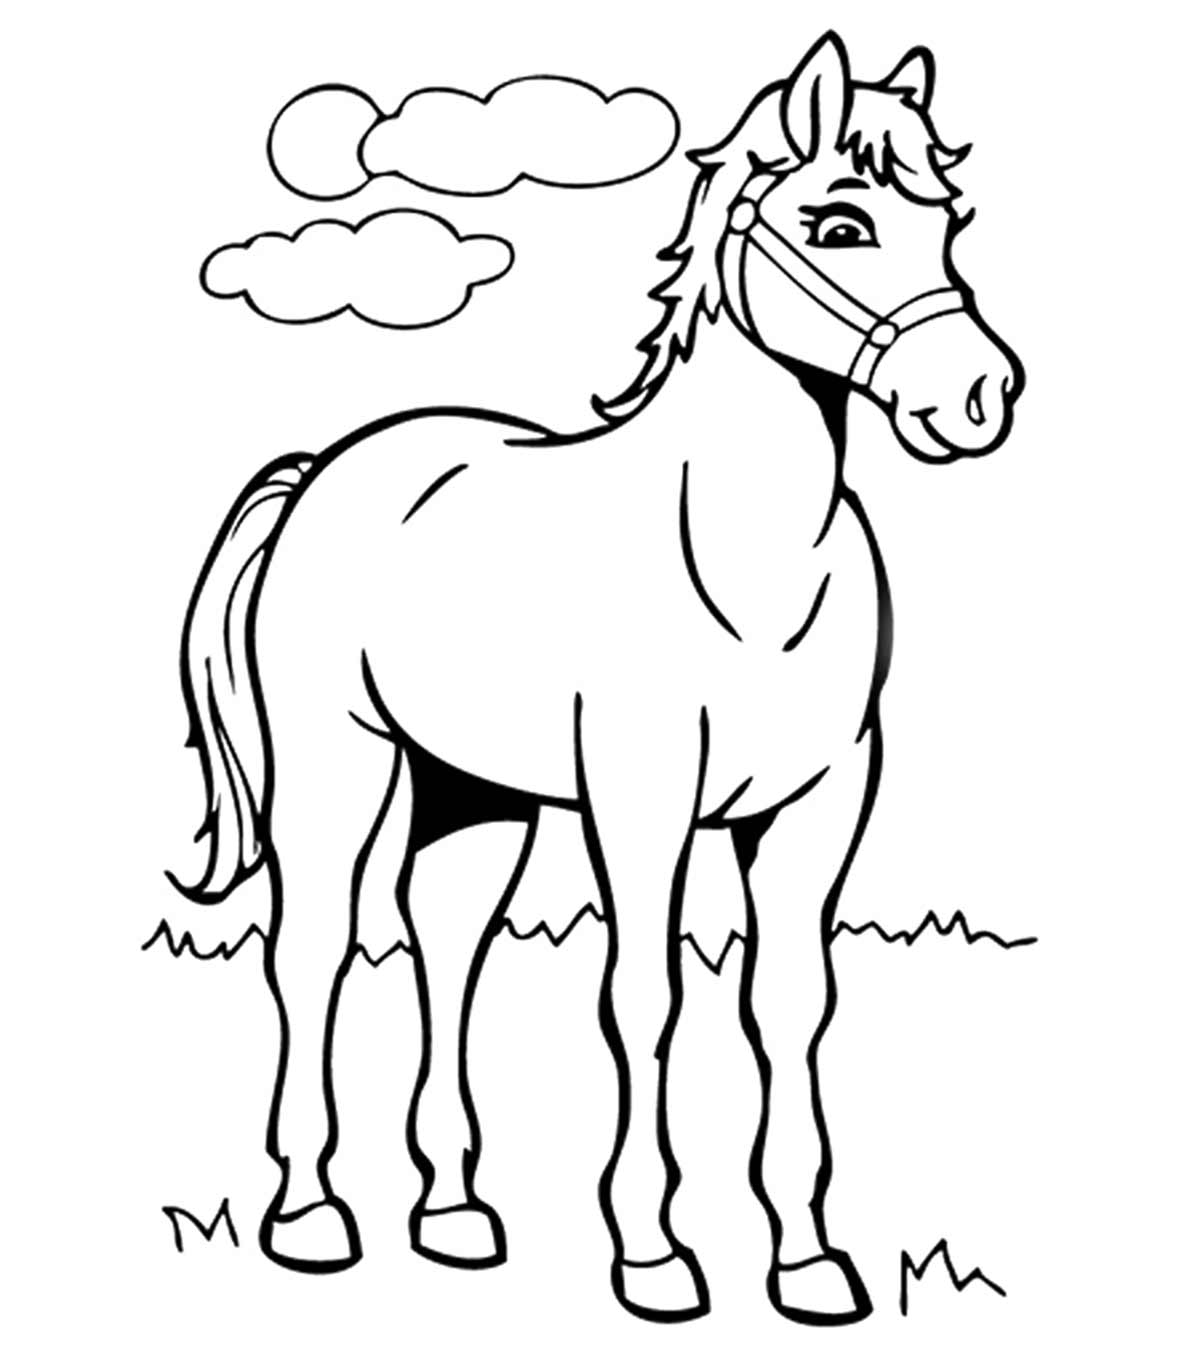 Horse free to color for kids : Horse head and mane - Horses Kids ... | 1350x1200